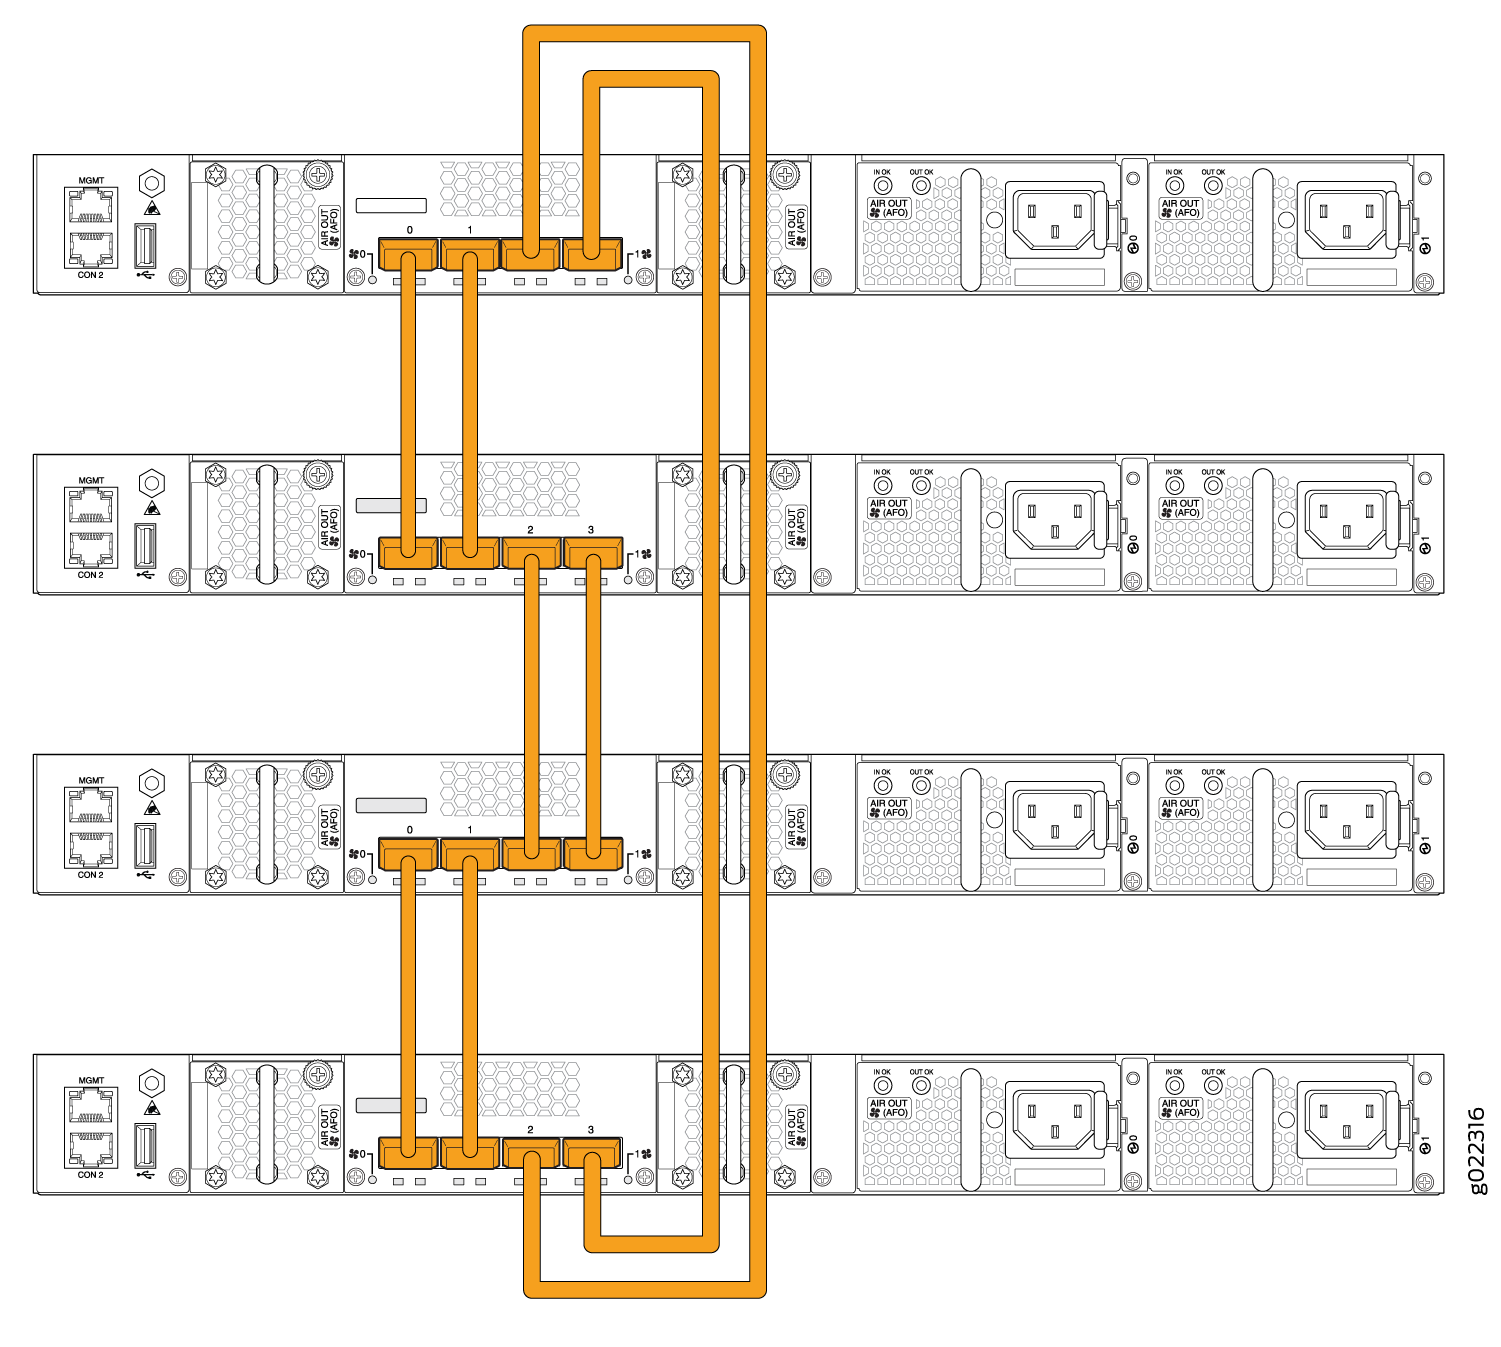 Four Member EX4300 Virtual Chassis in a Ring Topology Using Four QSFP+ Ports on Each Switch